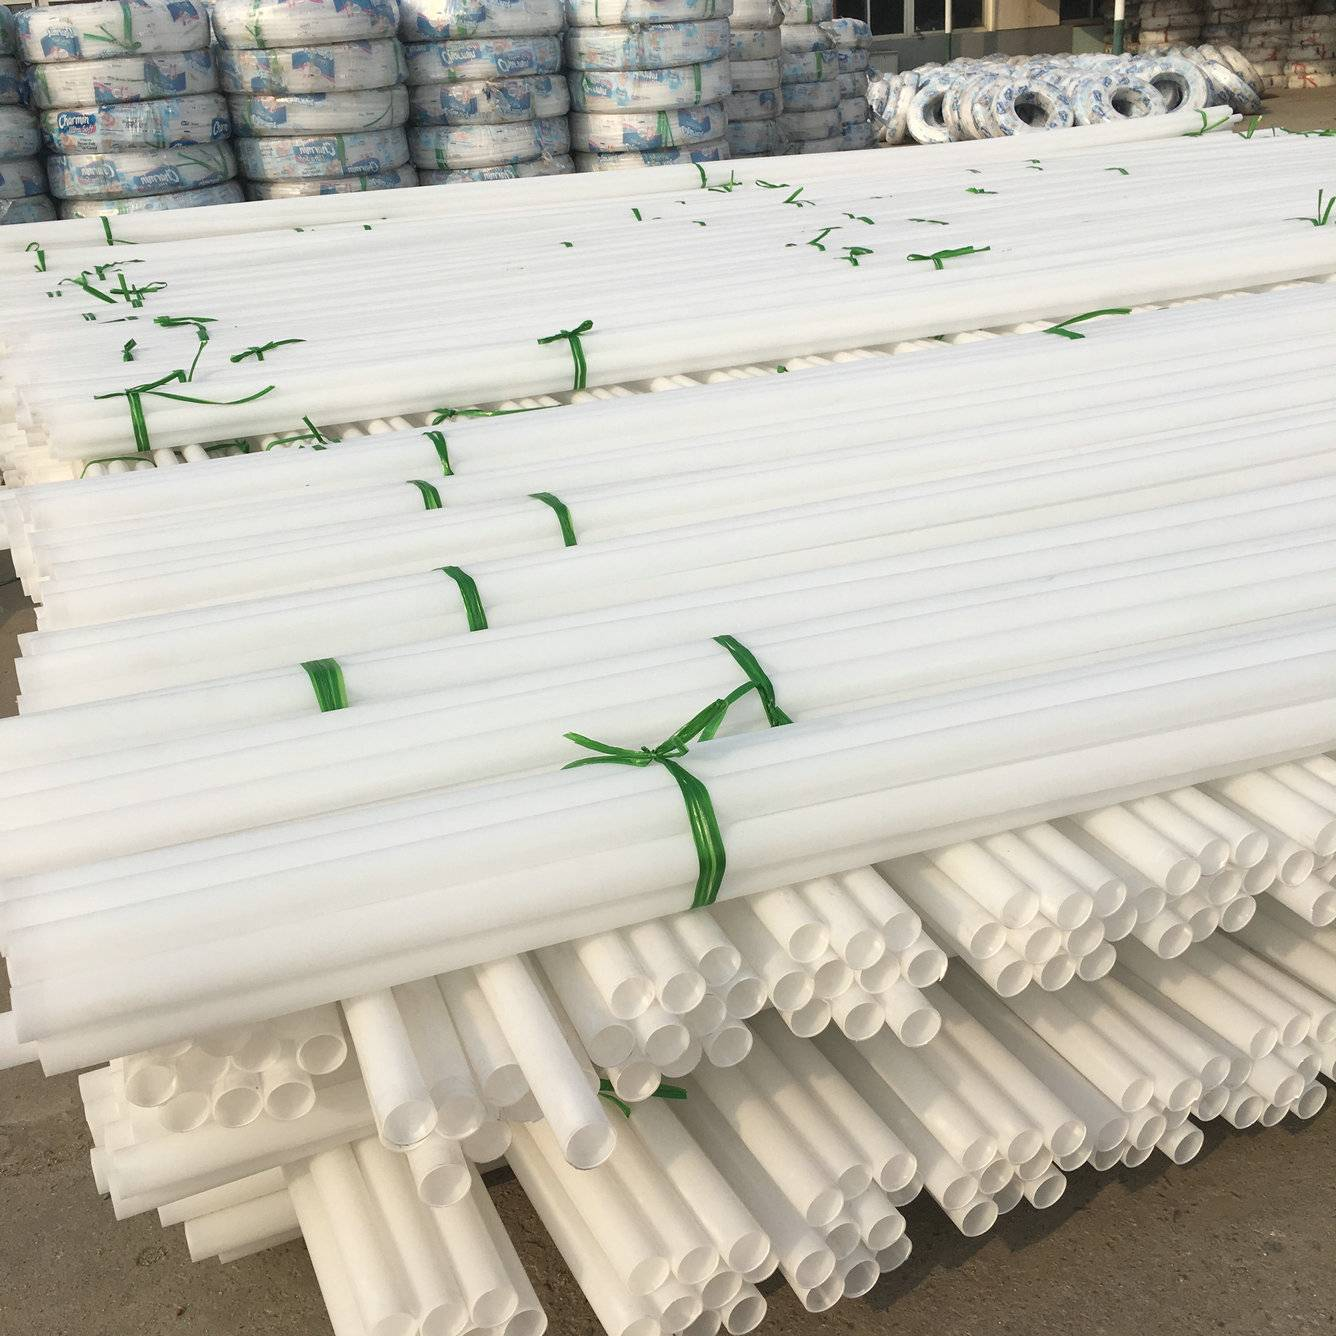 Manufacture of PP pipes for water supply